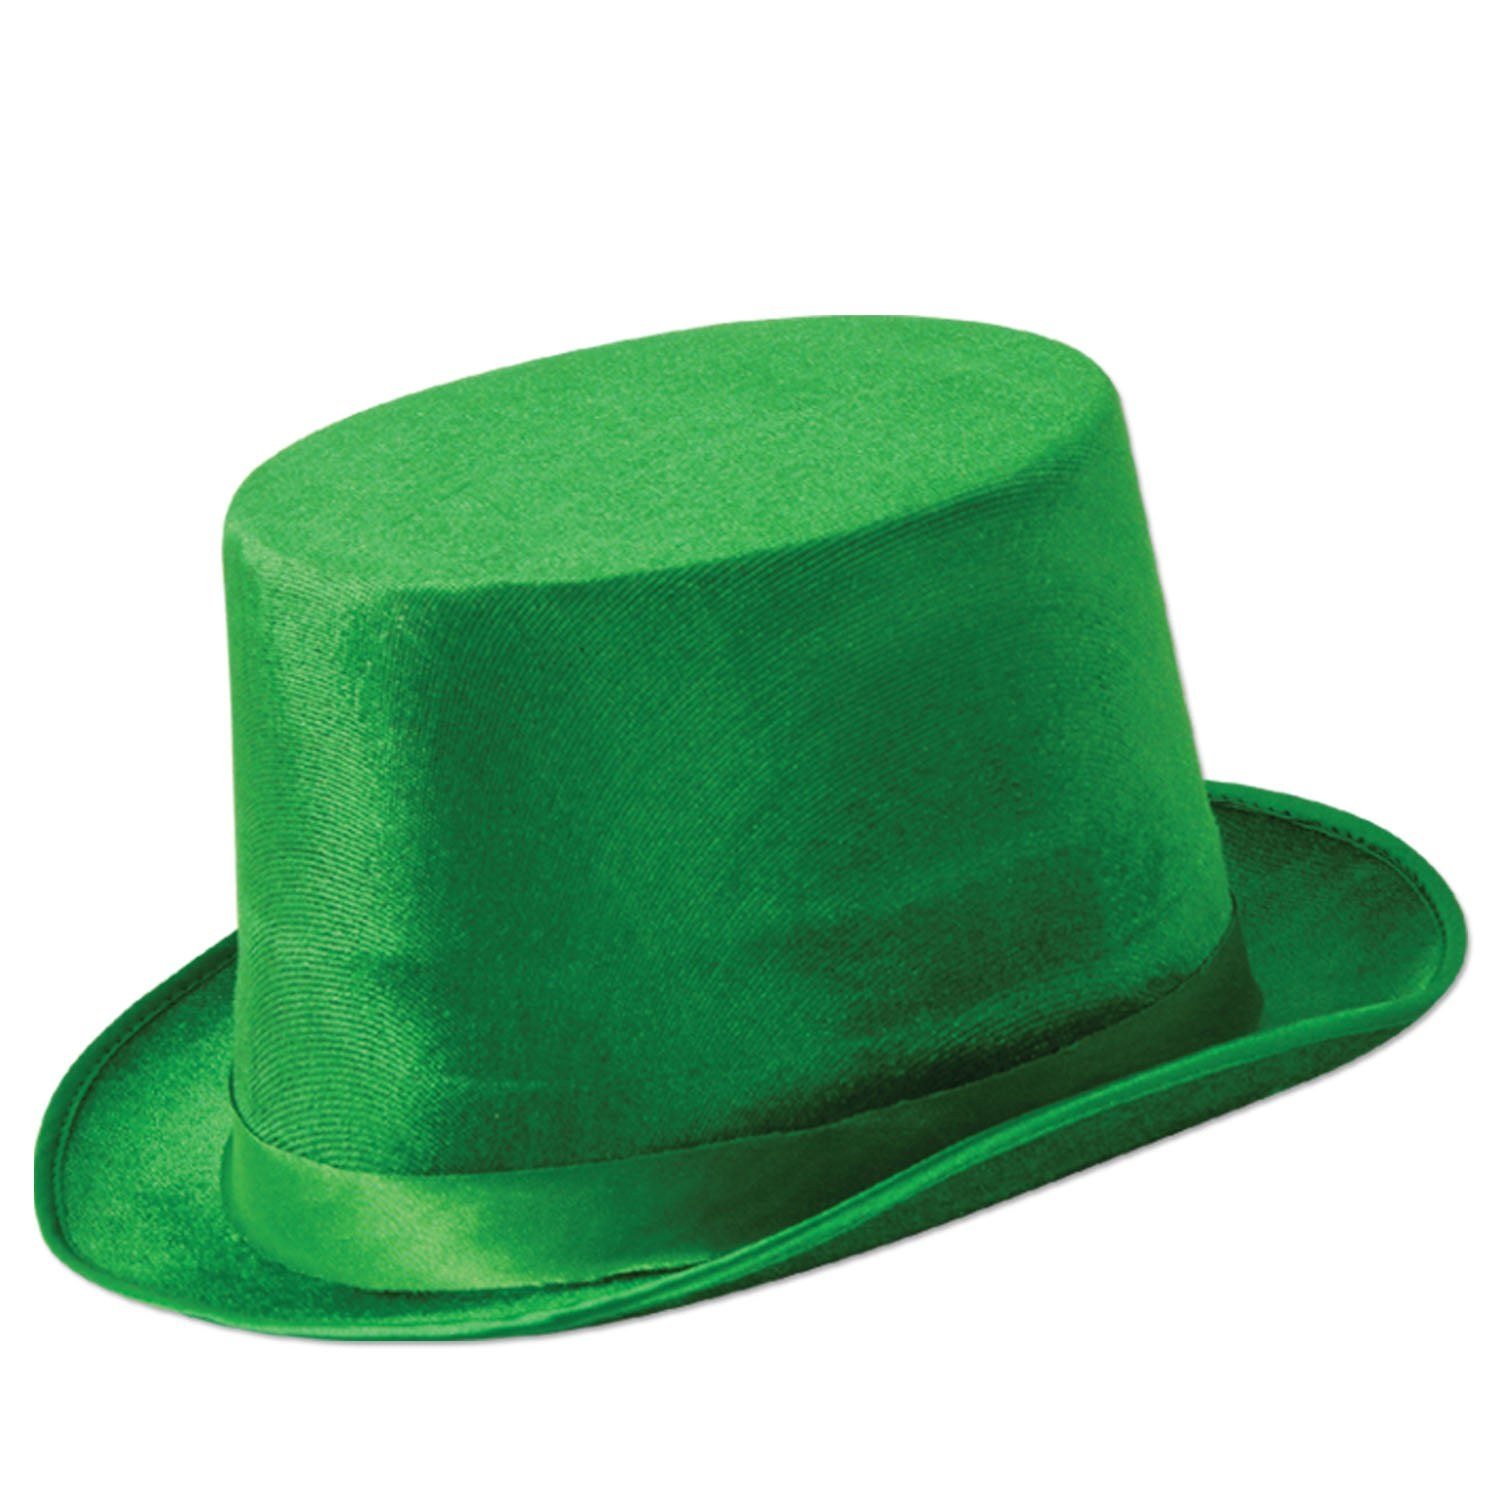 Green Vel-Felt Top Hat by Beistle - St. Patricks Day Theme Decorations